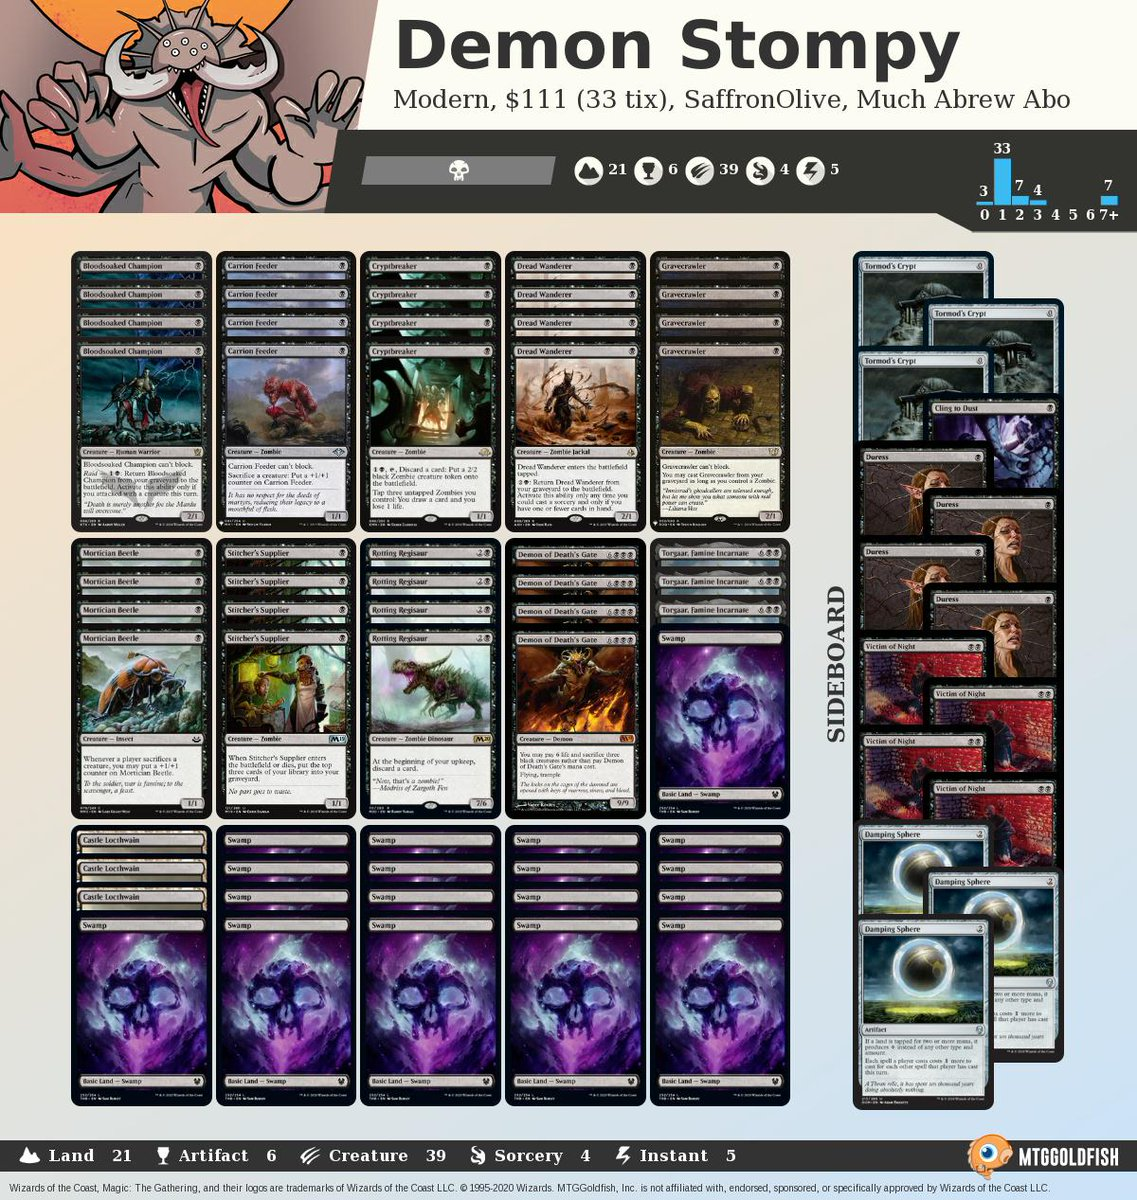 Budget Magic: Demon Stompy (Modern) mtggoldfish.com/articles/budge… #mtg #mtgo #muchabrew